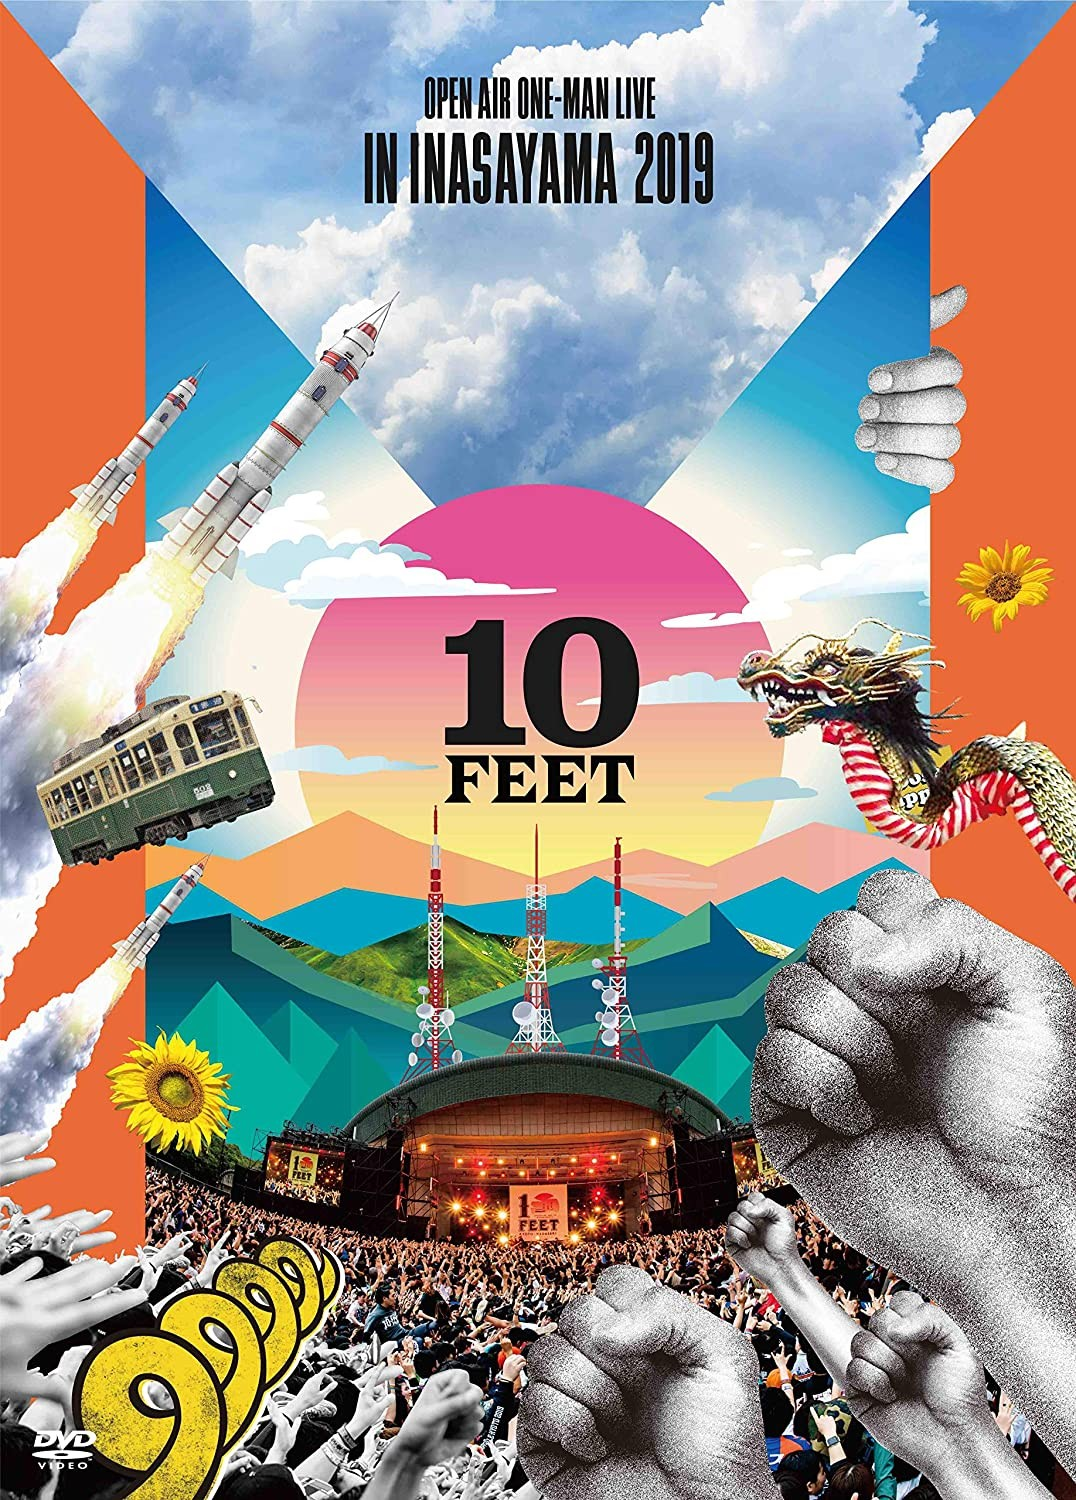 [TV-SHOW] 10-FEET OPEN AIR ONE-MAN LIVE IN INASAYAMA 2019 (2019.11.13) (DVDRIP)